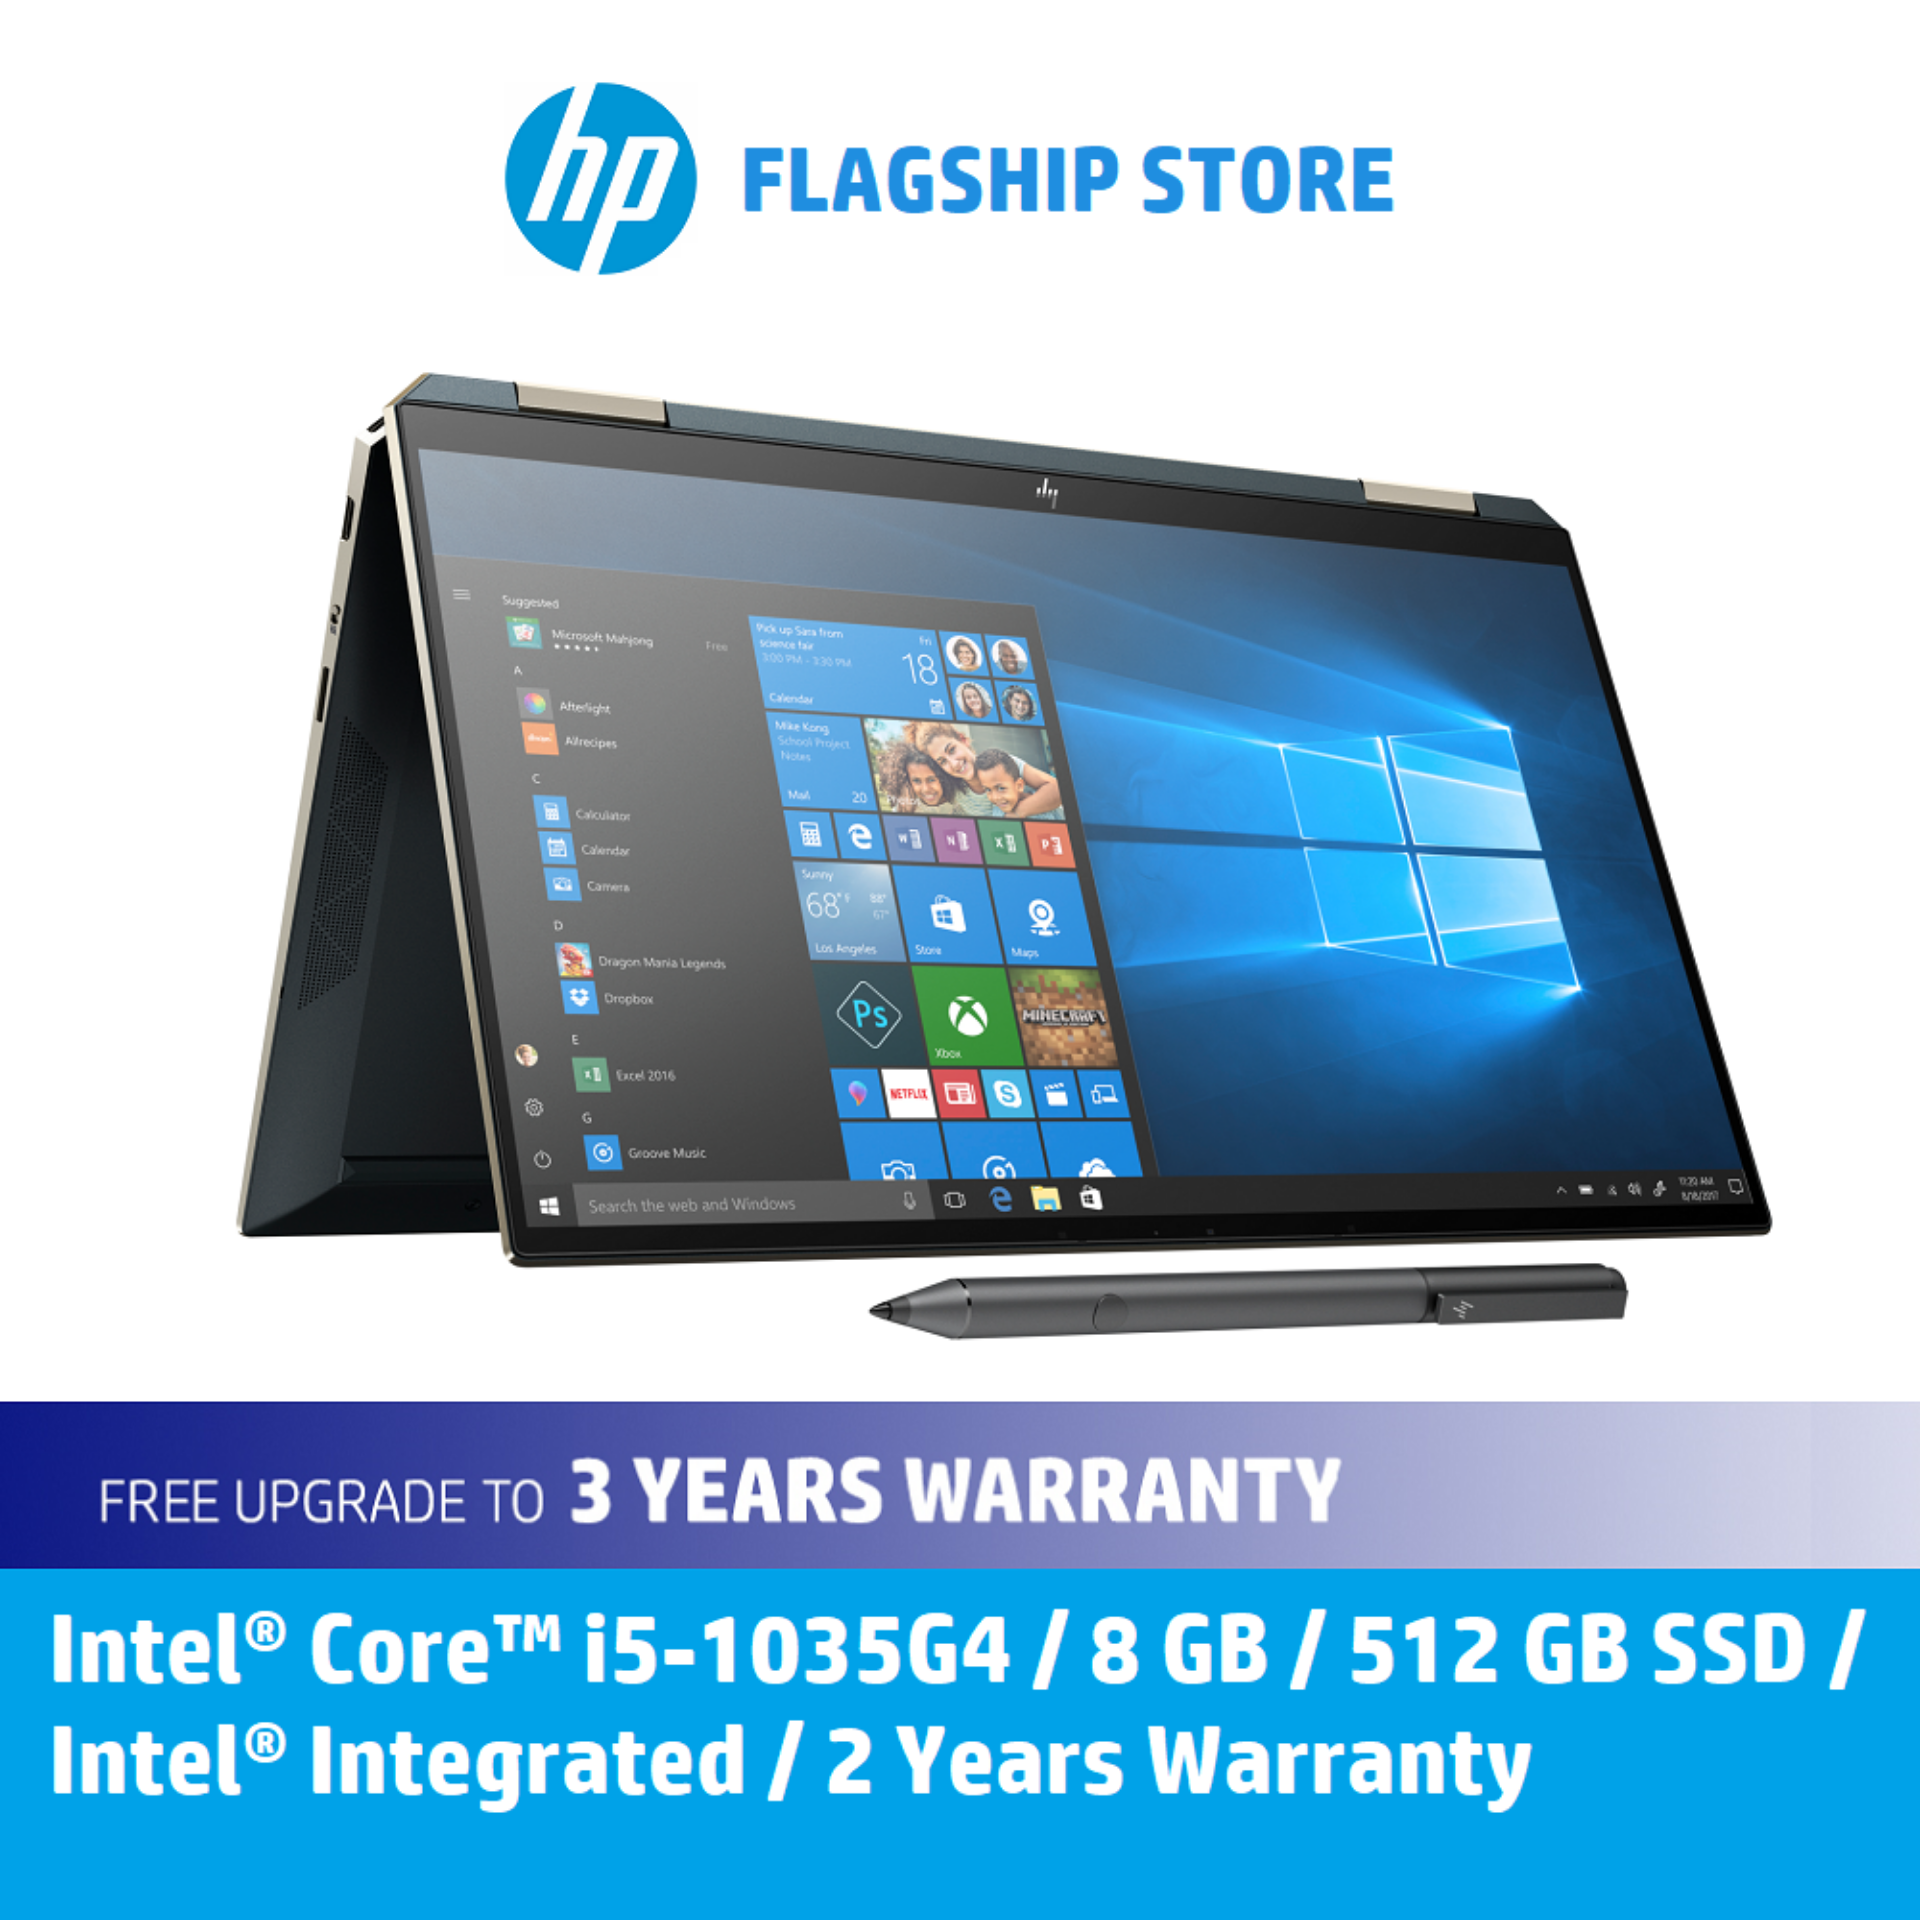 HP Laptop Spectre x360 13-aw0183TU [FREE Upgrade to 3 years Warranty, Backpack & Delivery] Malaysia